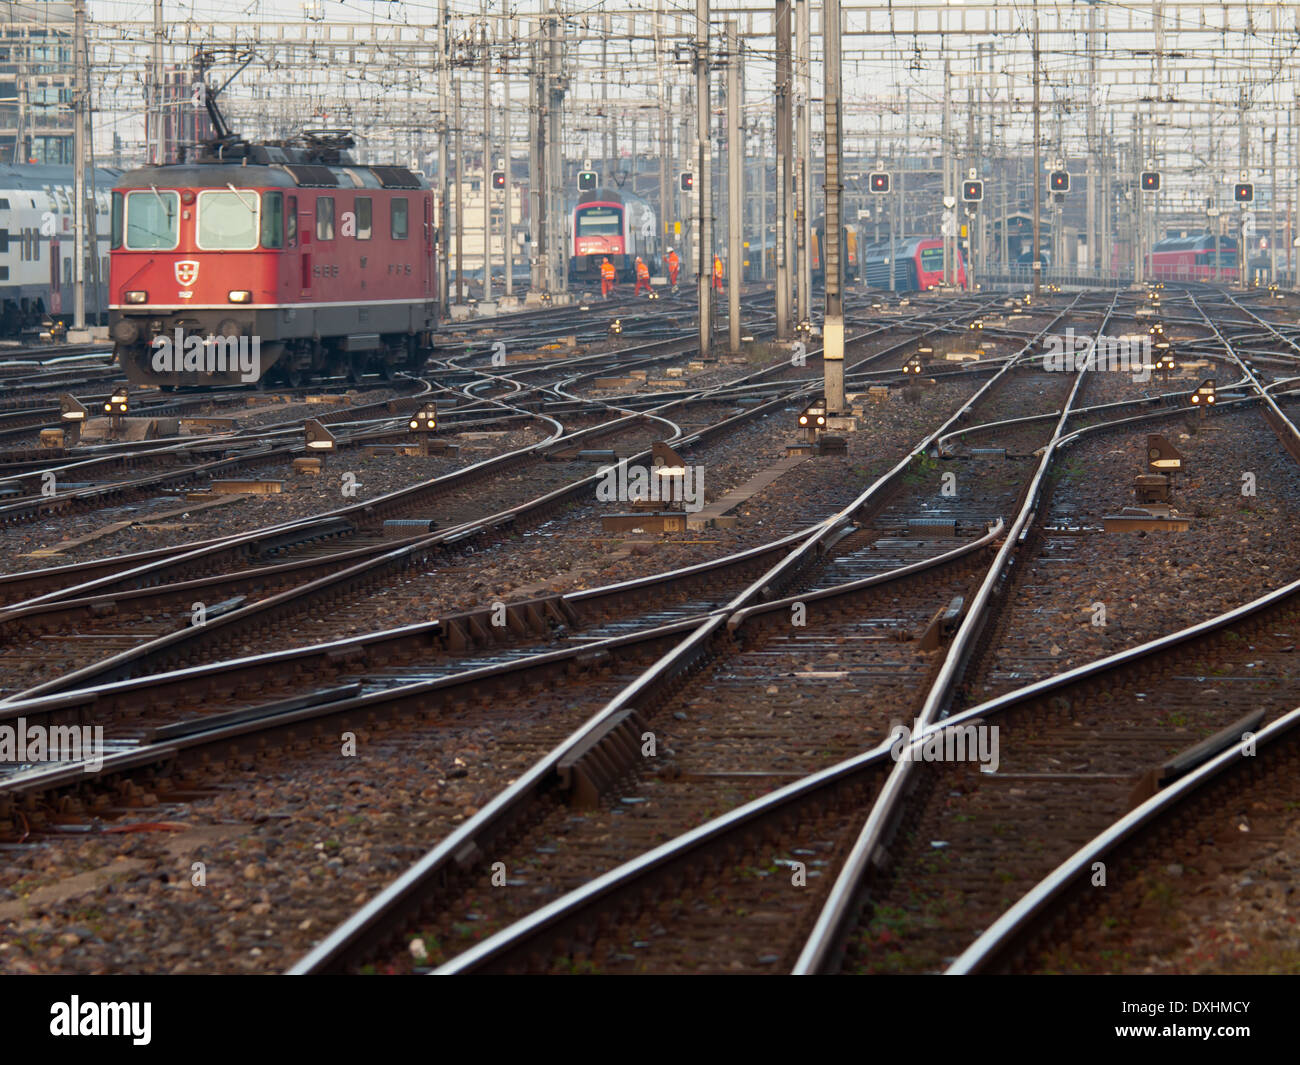 A train of the Swiss national railroad company SBB is approaching Zurich main station. Stock Photo